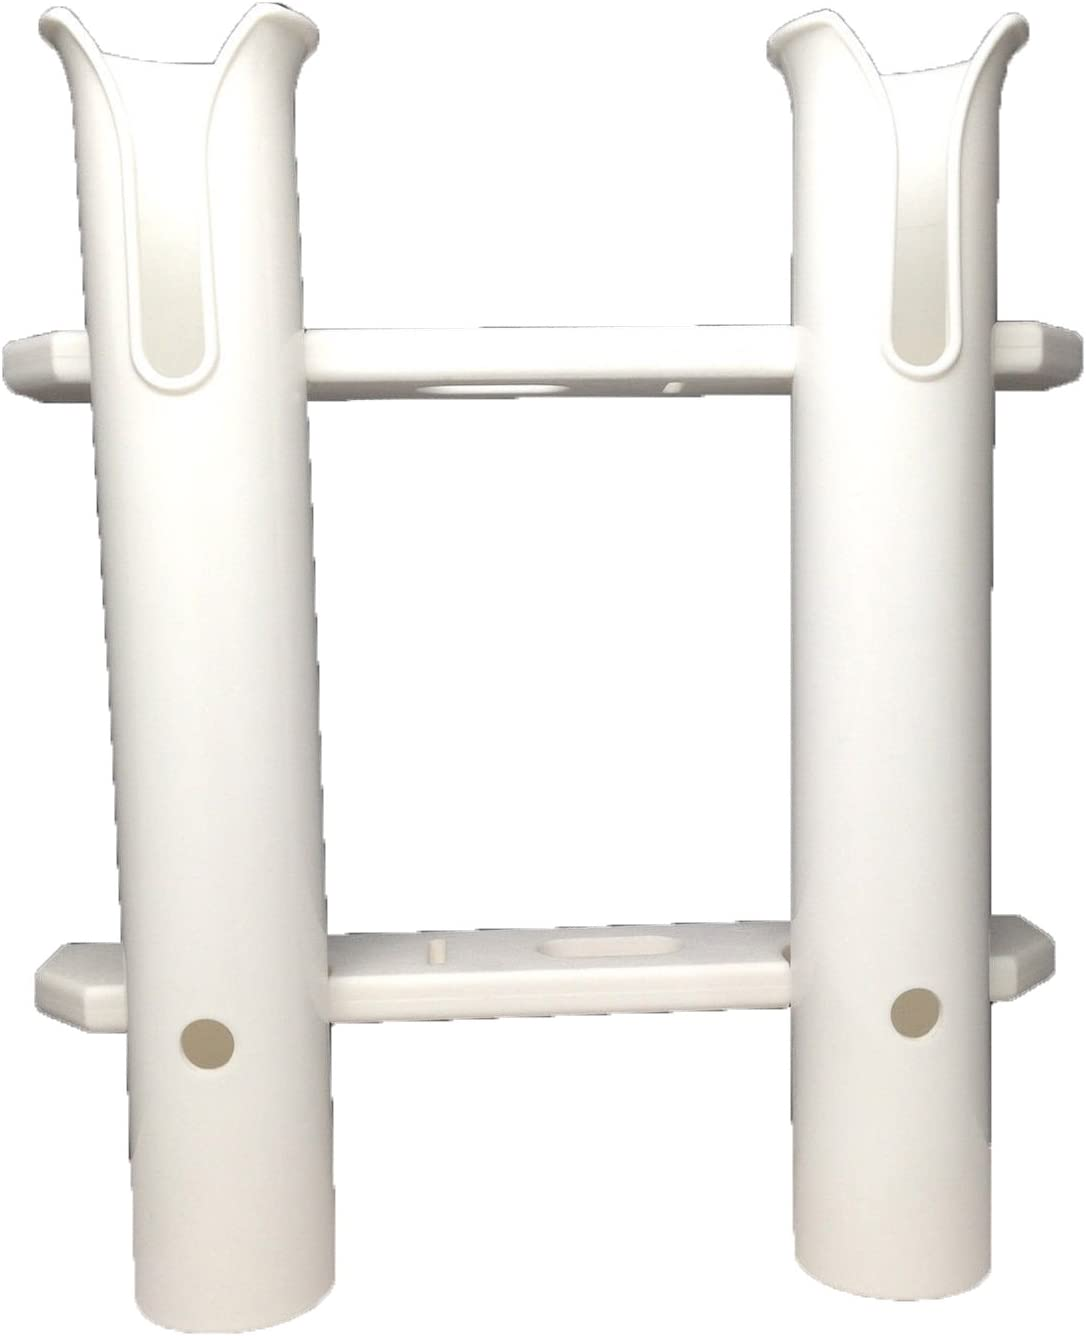 Pactrade Marine Boat White UV Stabilized Plastic Fishing Rod Holder Two Tube Dual